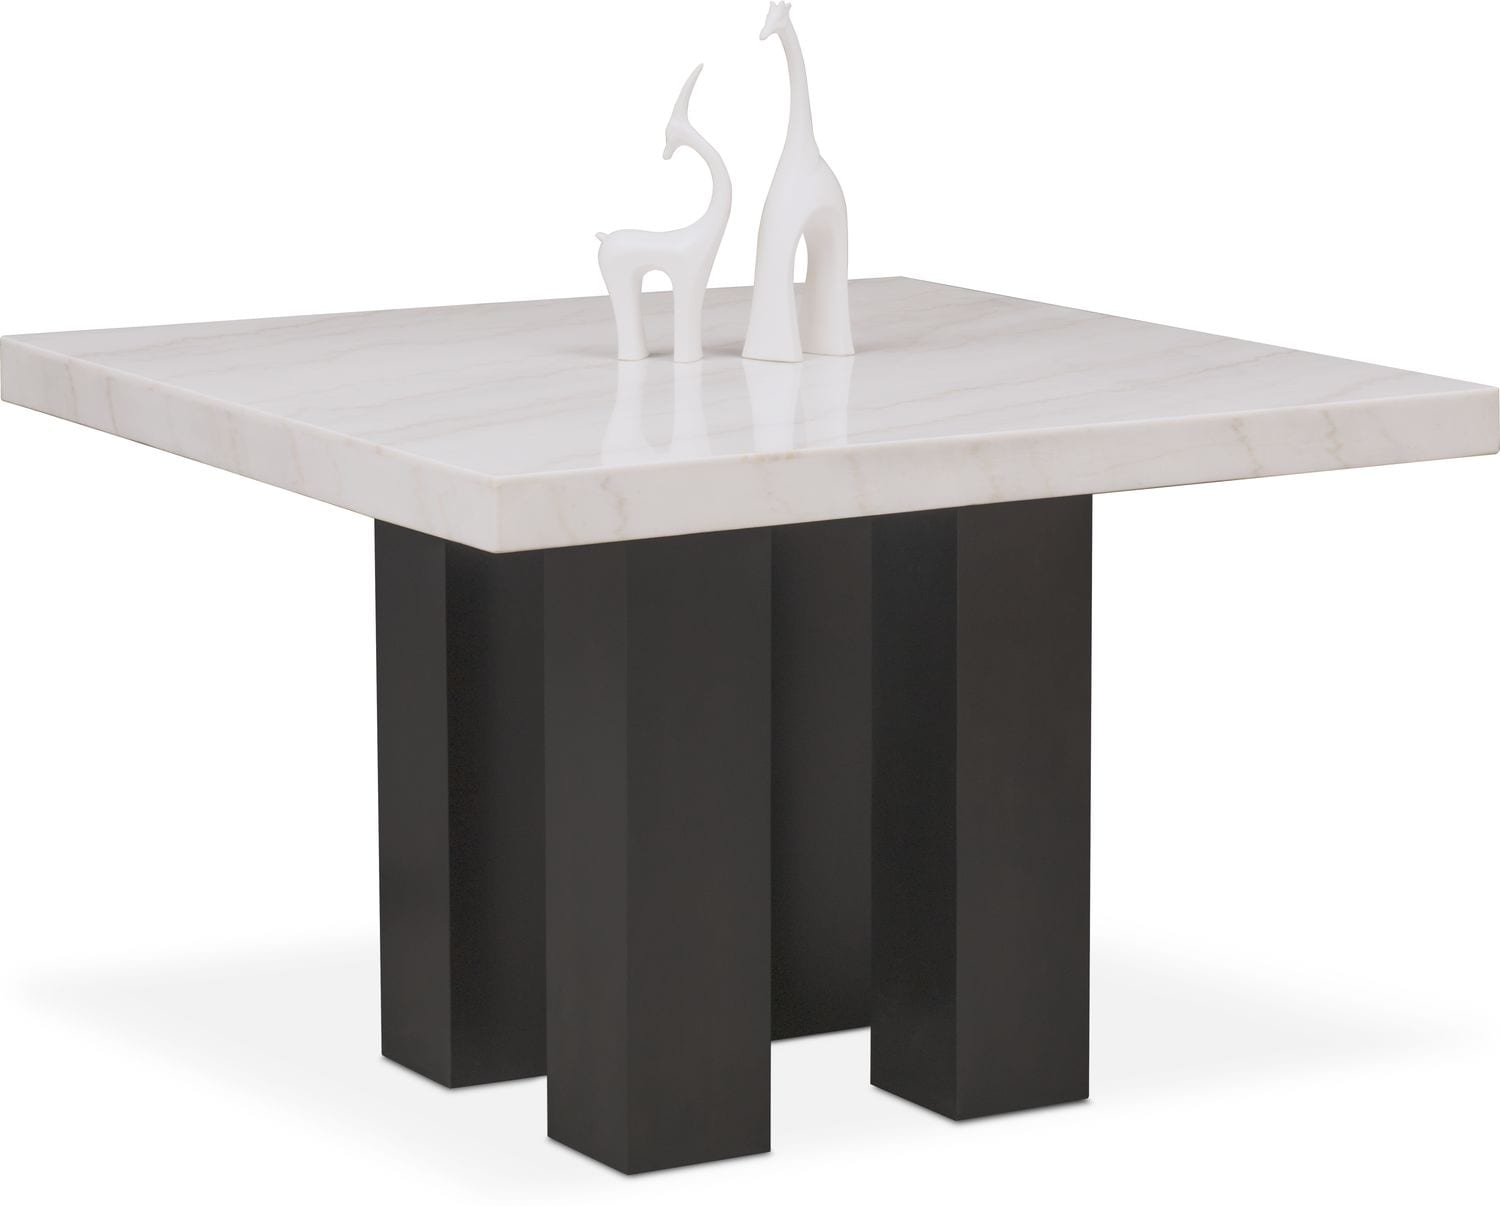 Dining Room Furniture - Artemis Marble Counter-Height Dining Table